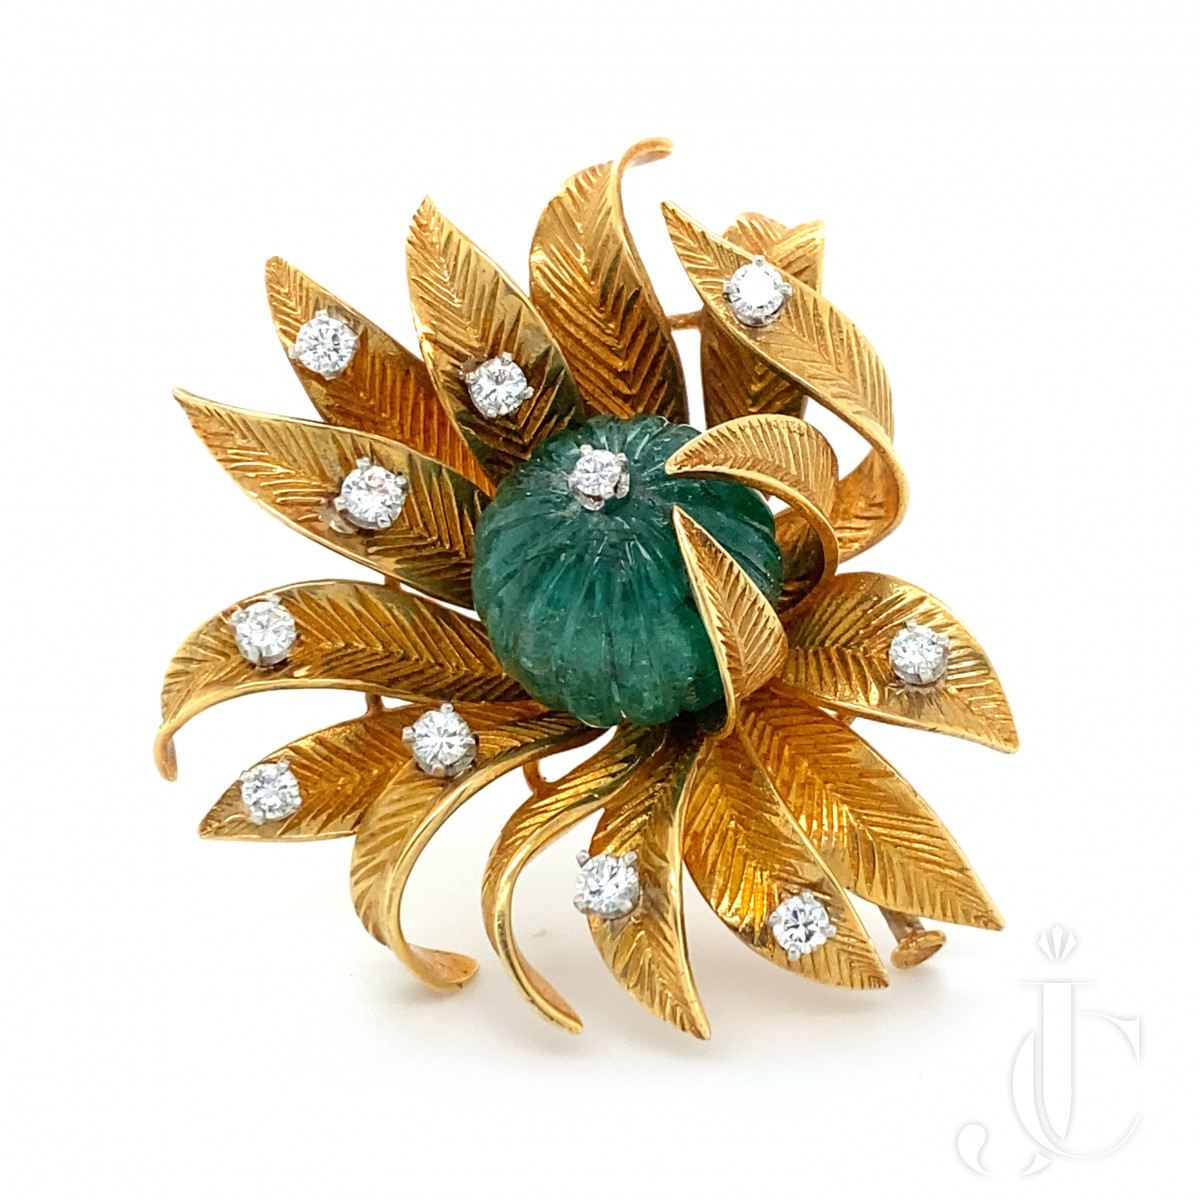 Carved Emerald Pin